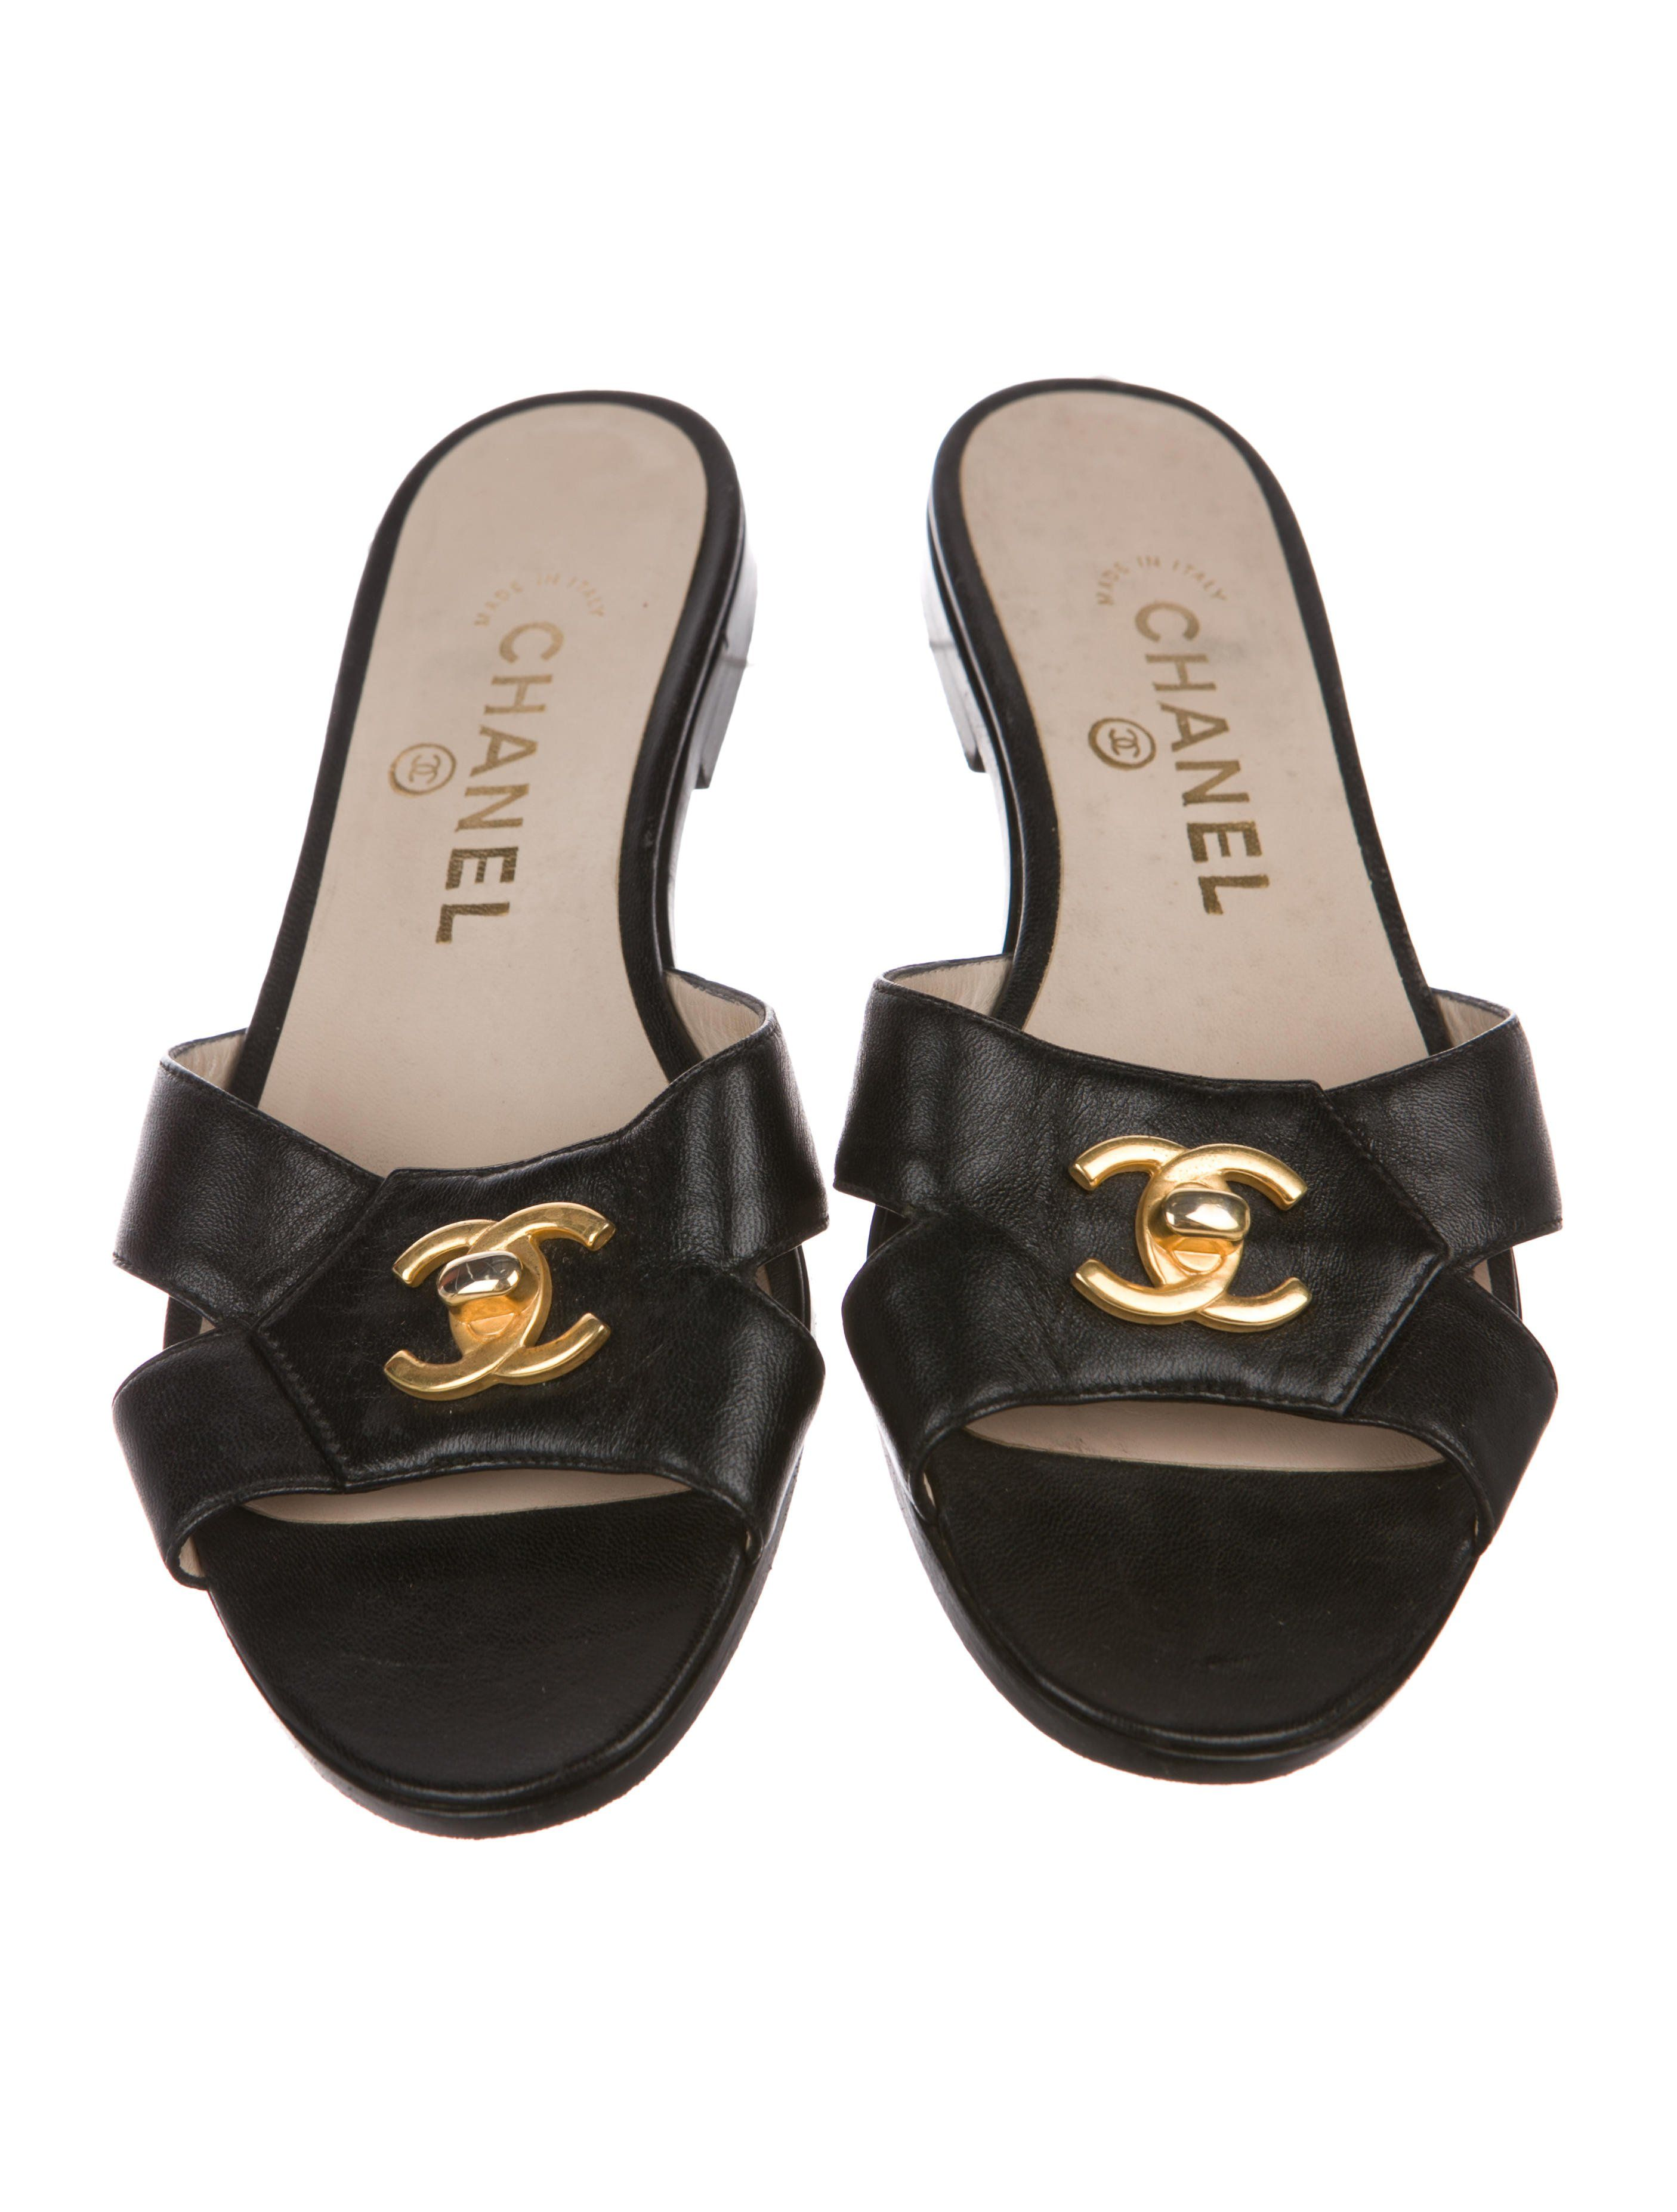 Black lambskin vintage Chanel sandals with CC turn-lock detail at vamps and  stacked heels.